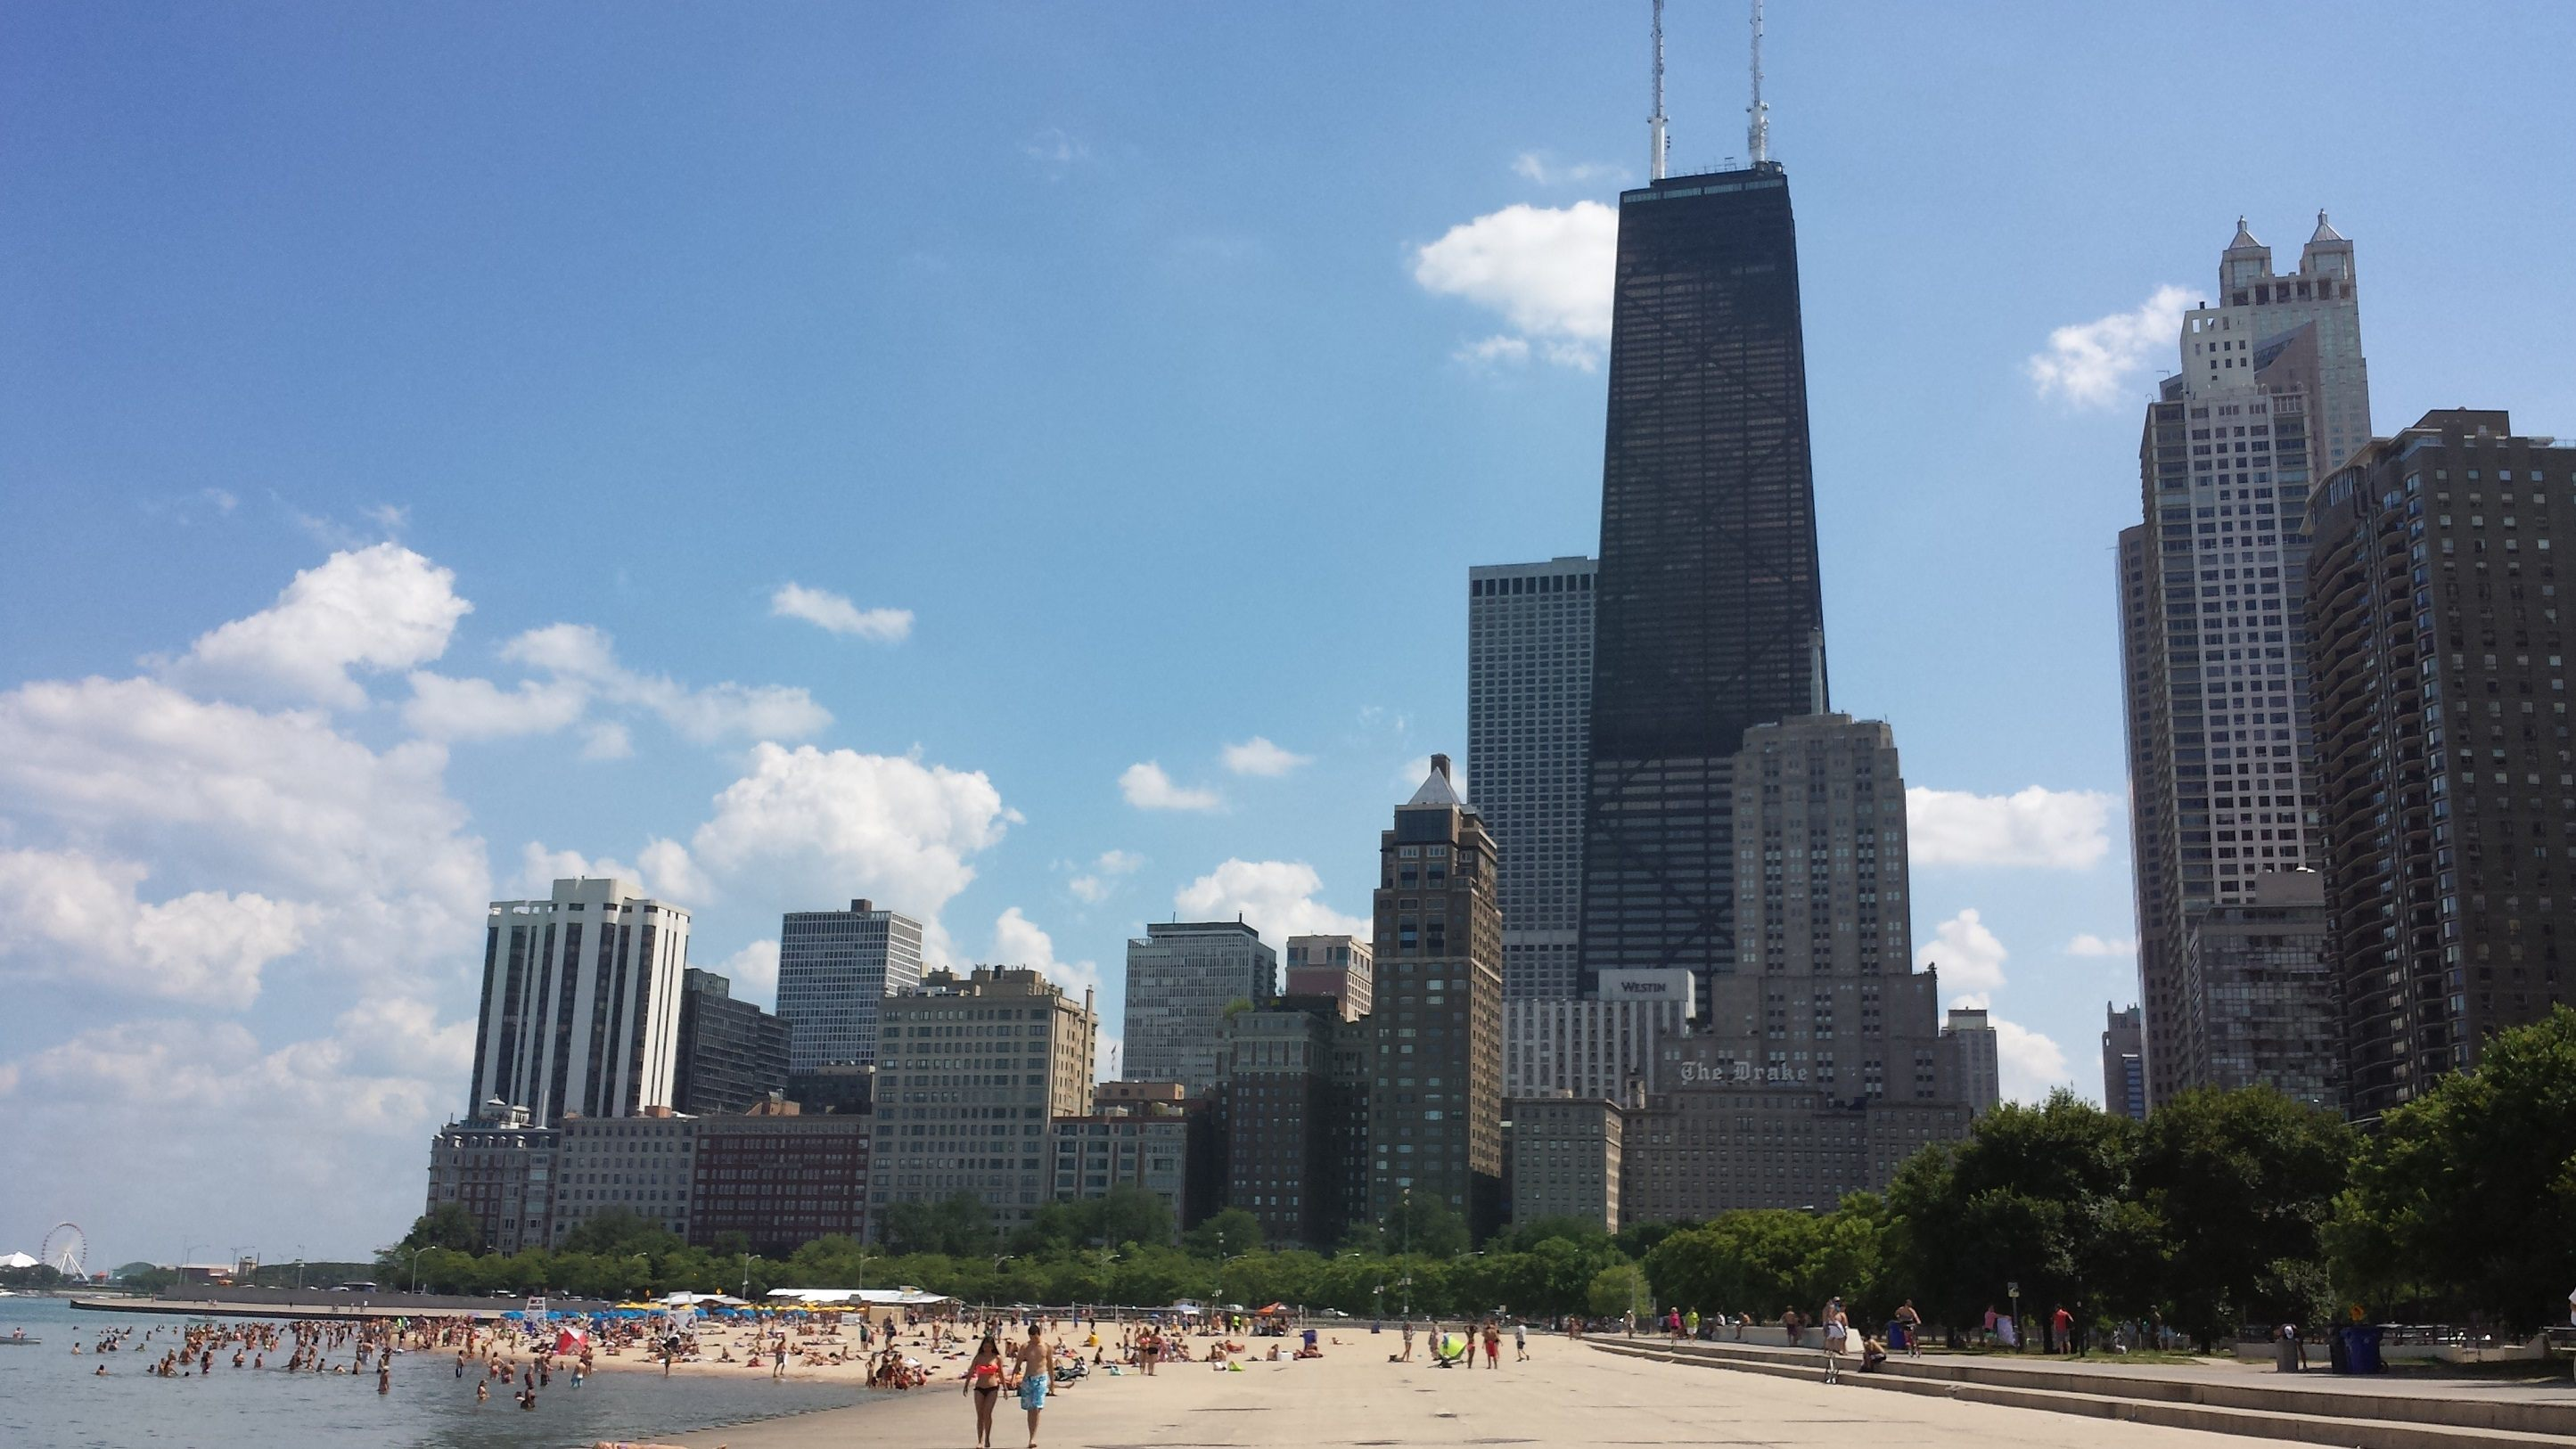 Oak Street Beach in Chicago